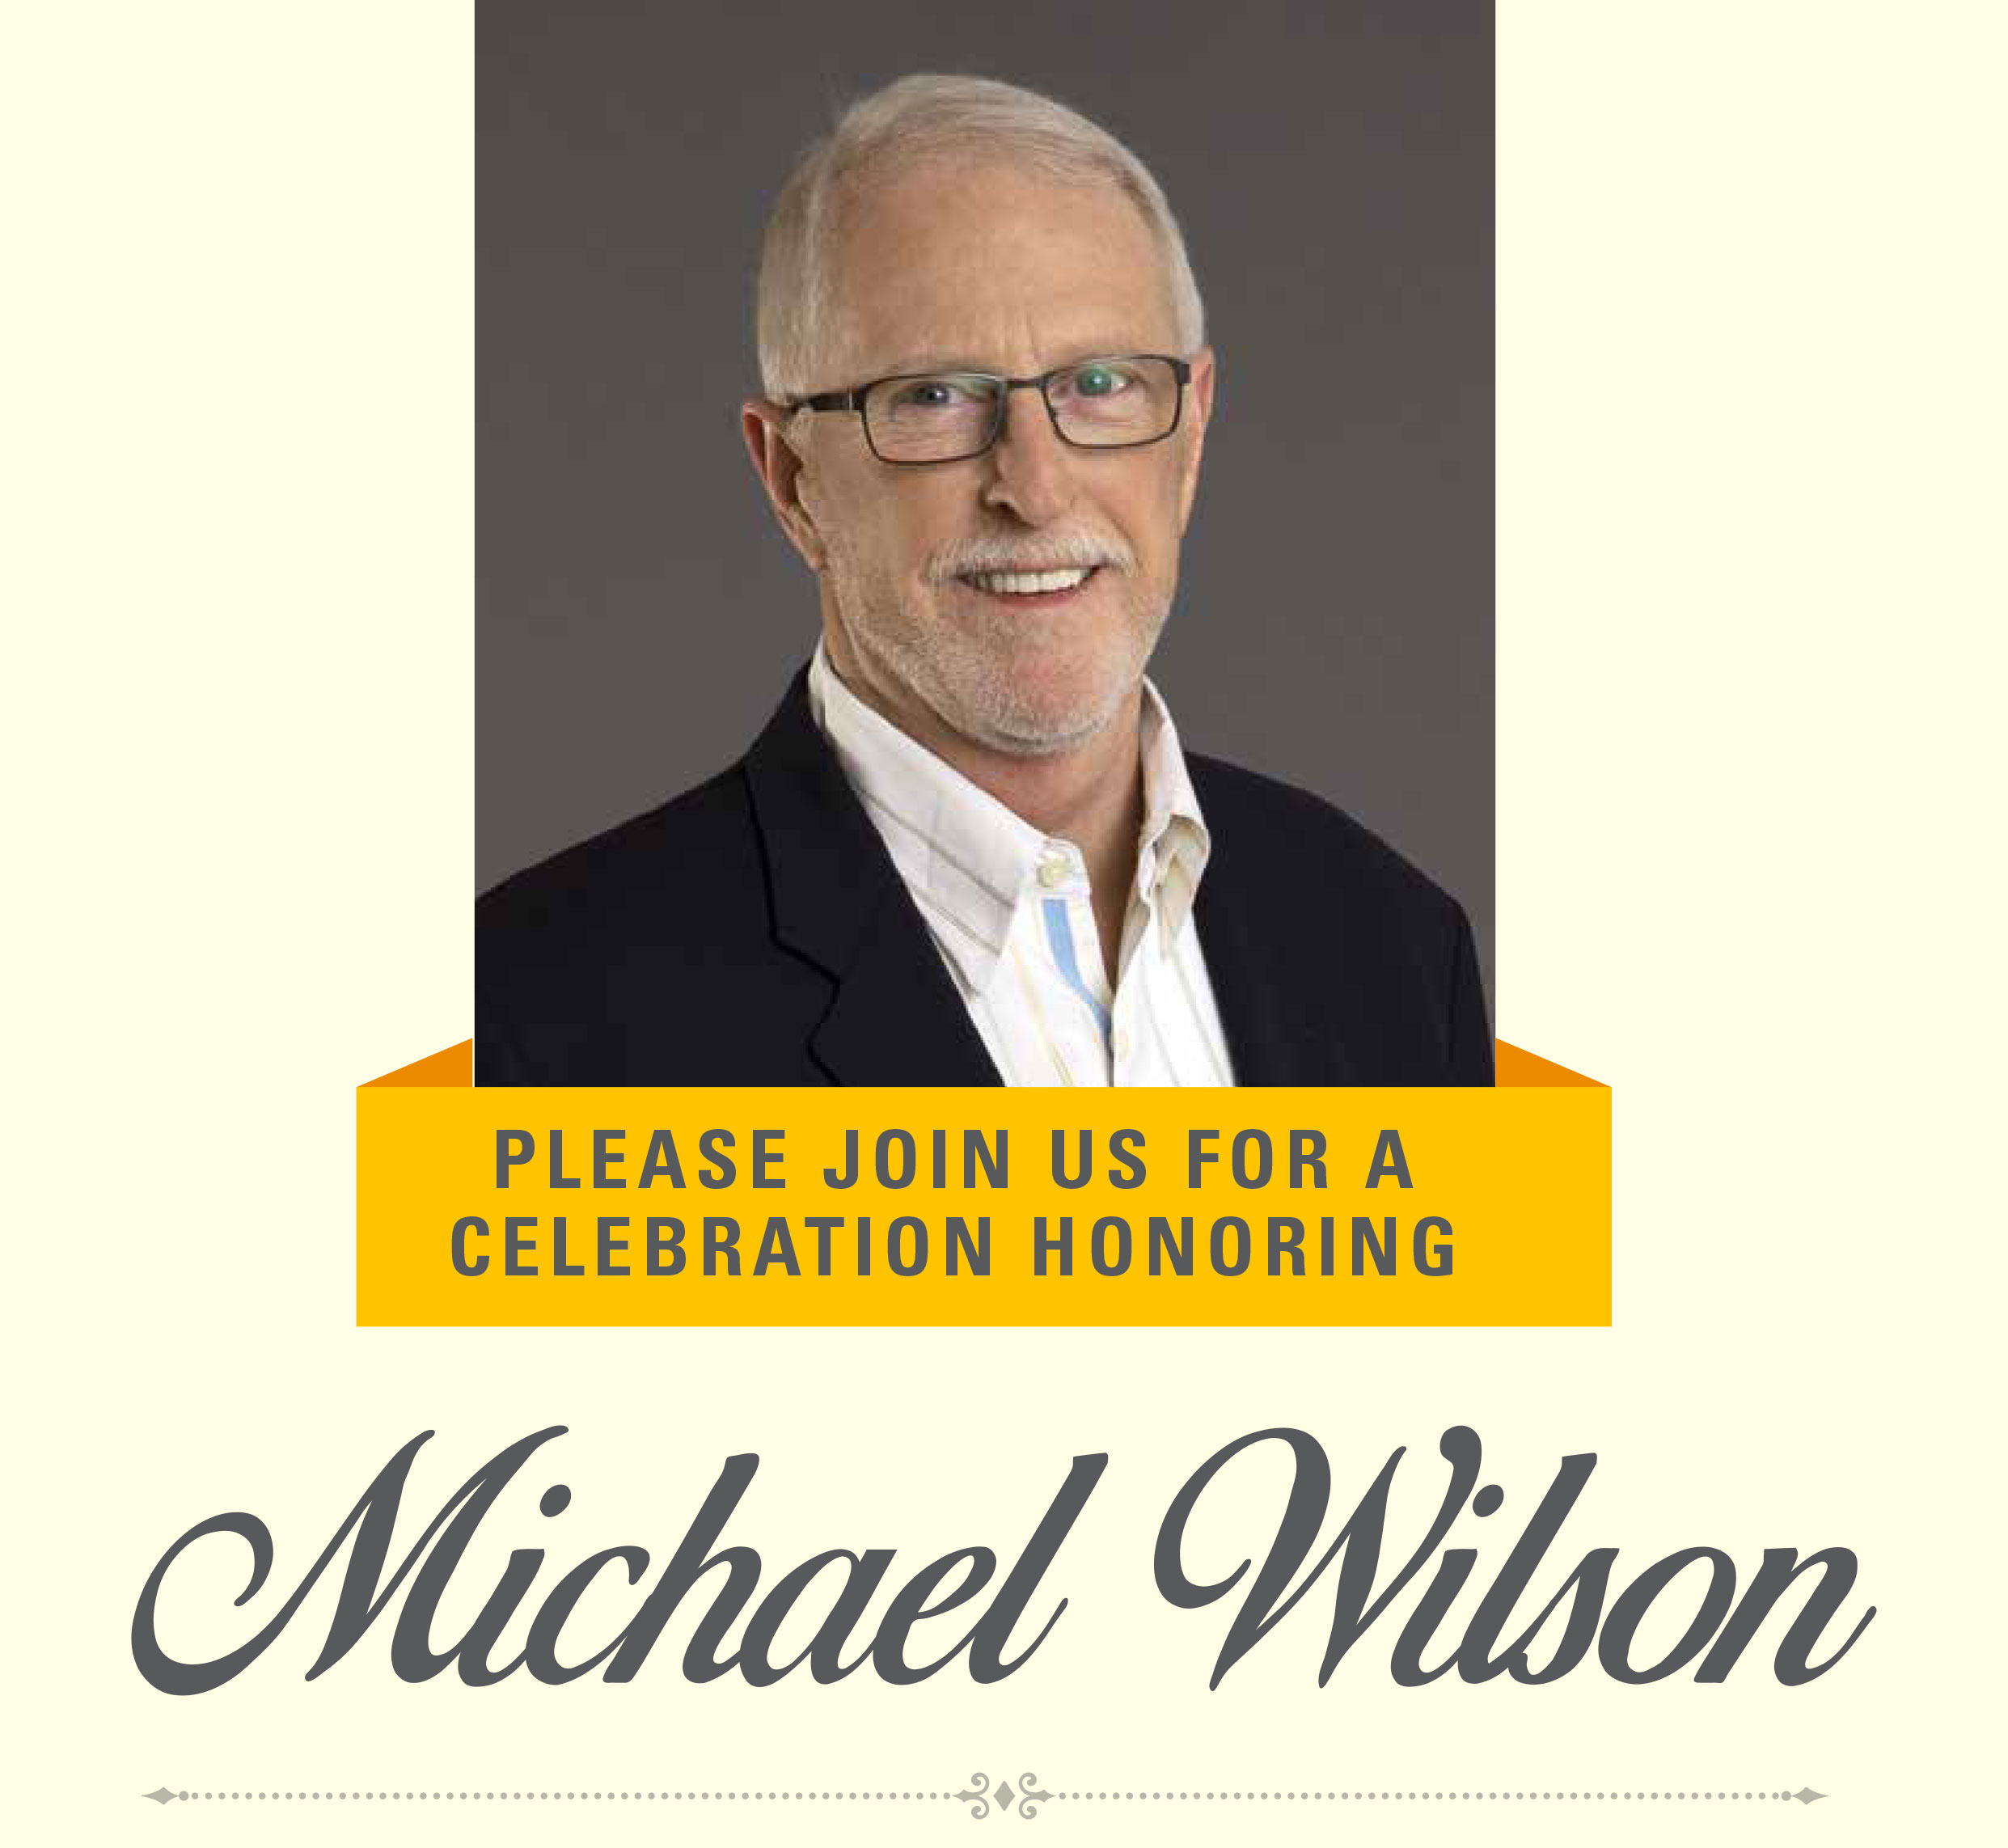 Please join us for a celebration honoring Michael Wilson